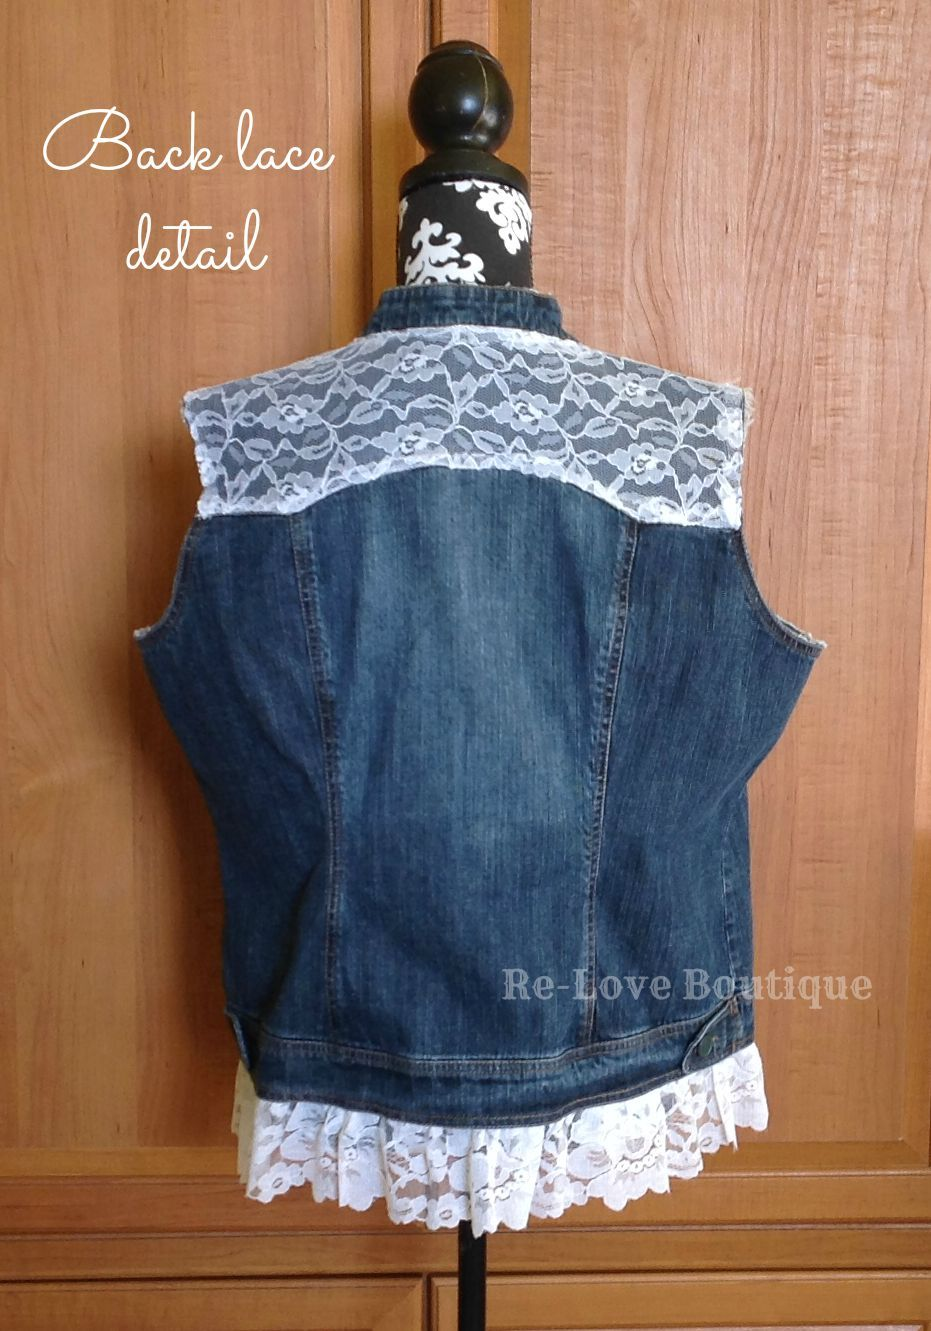 Denim vest with wedding dress lace from relove boutique